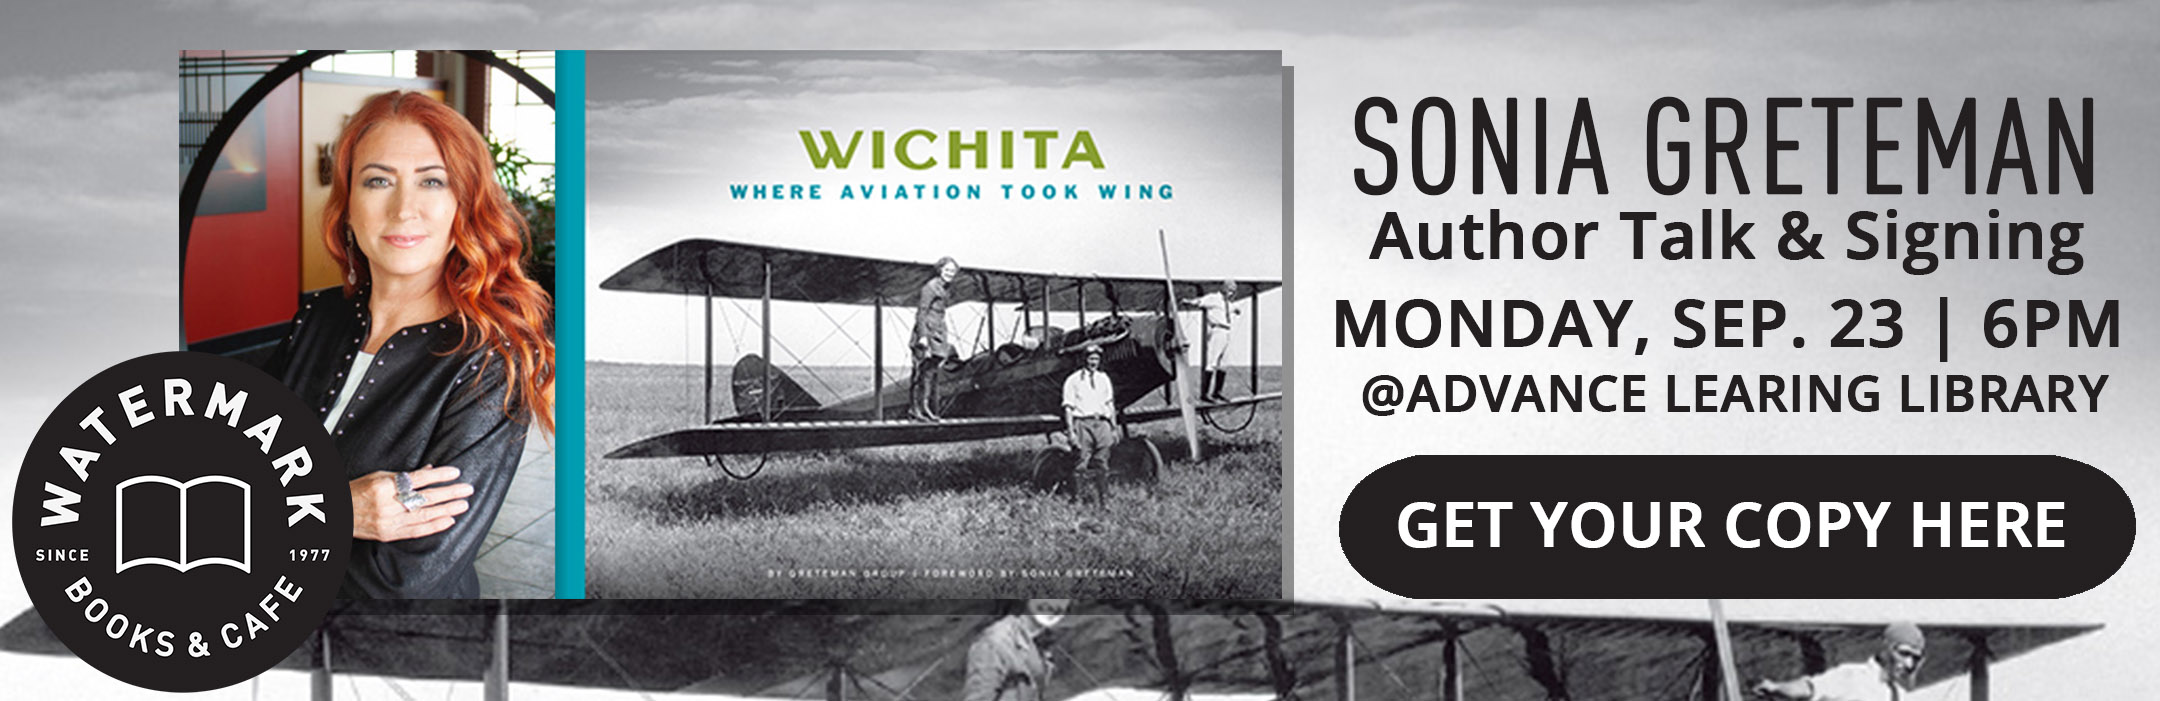 Sonia Greteman Wichita Aviation